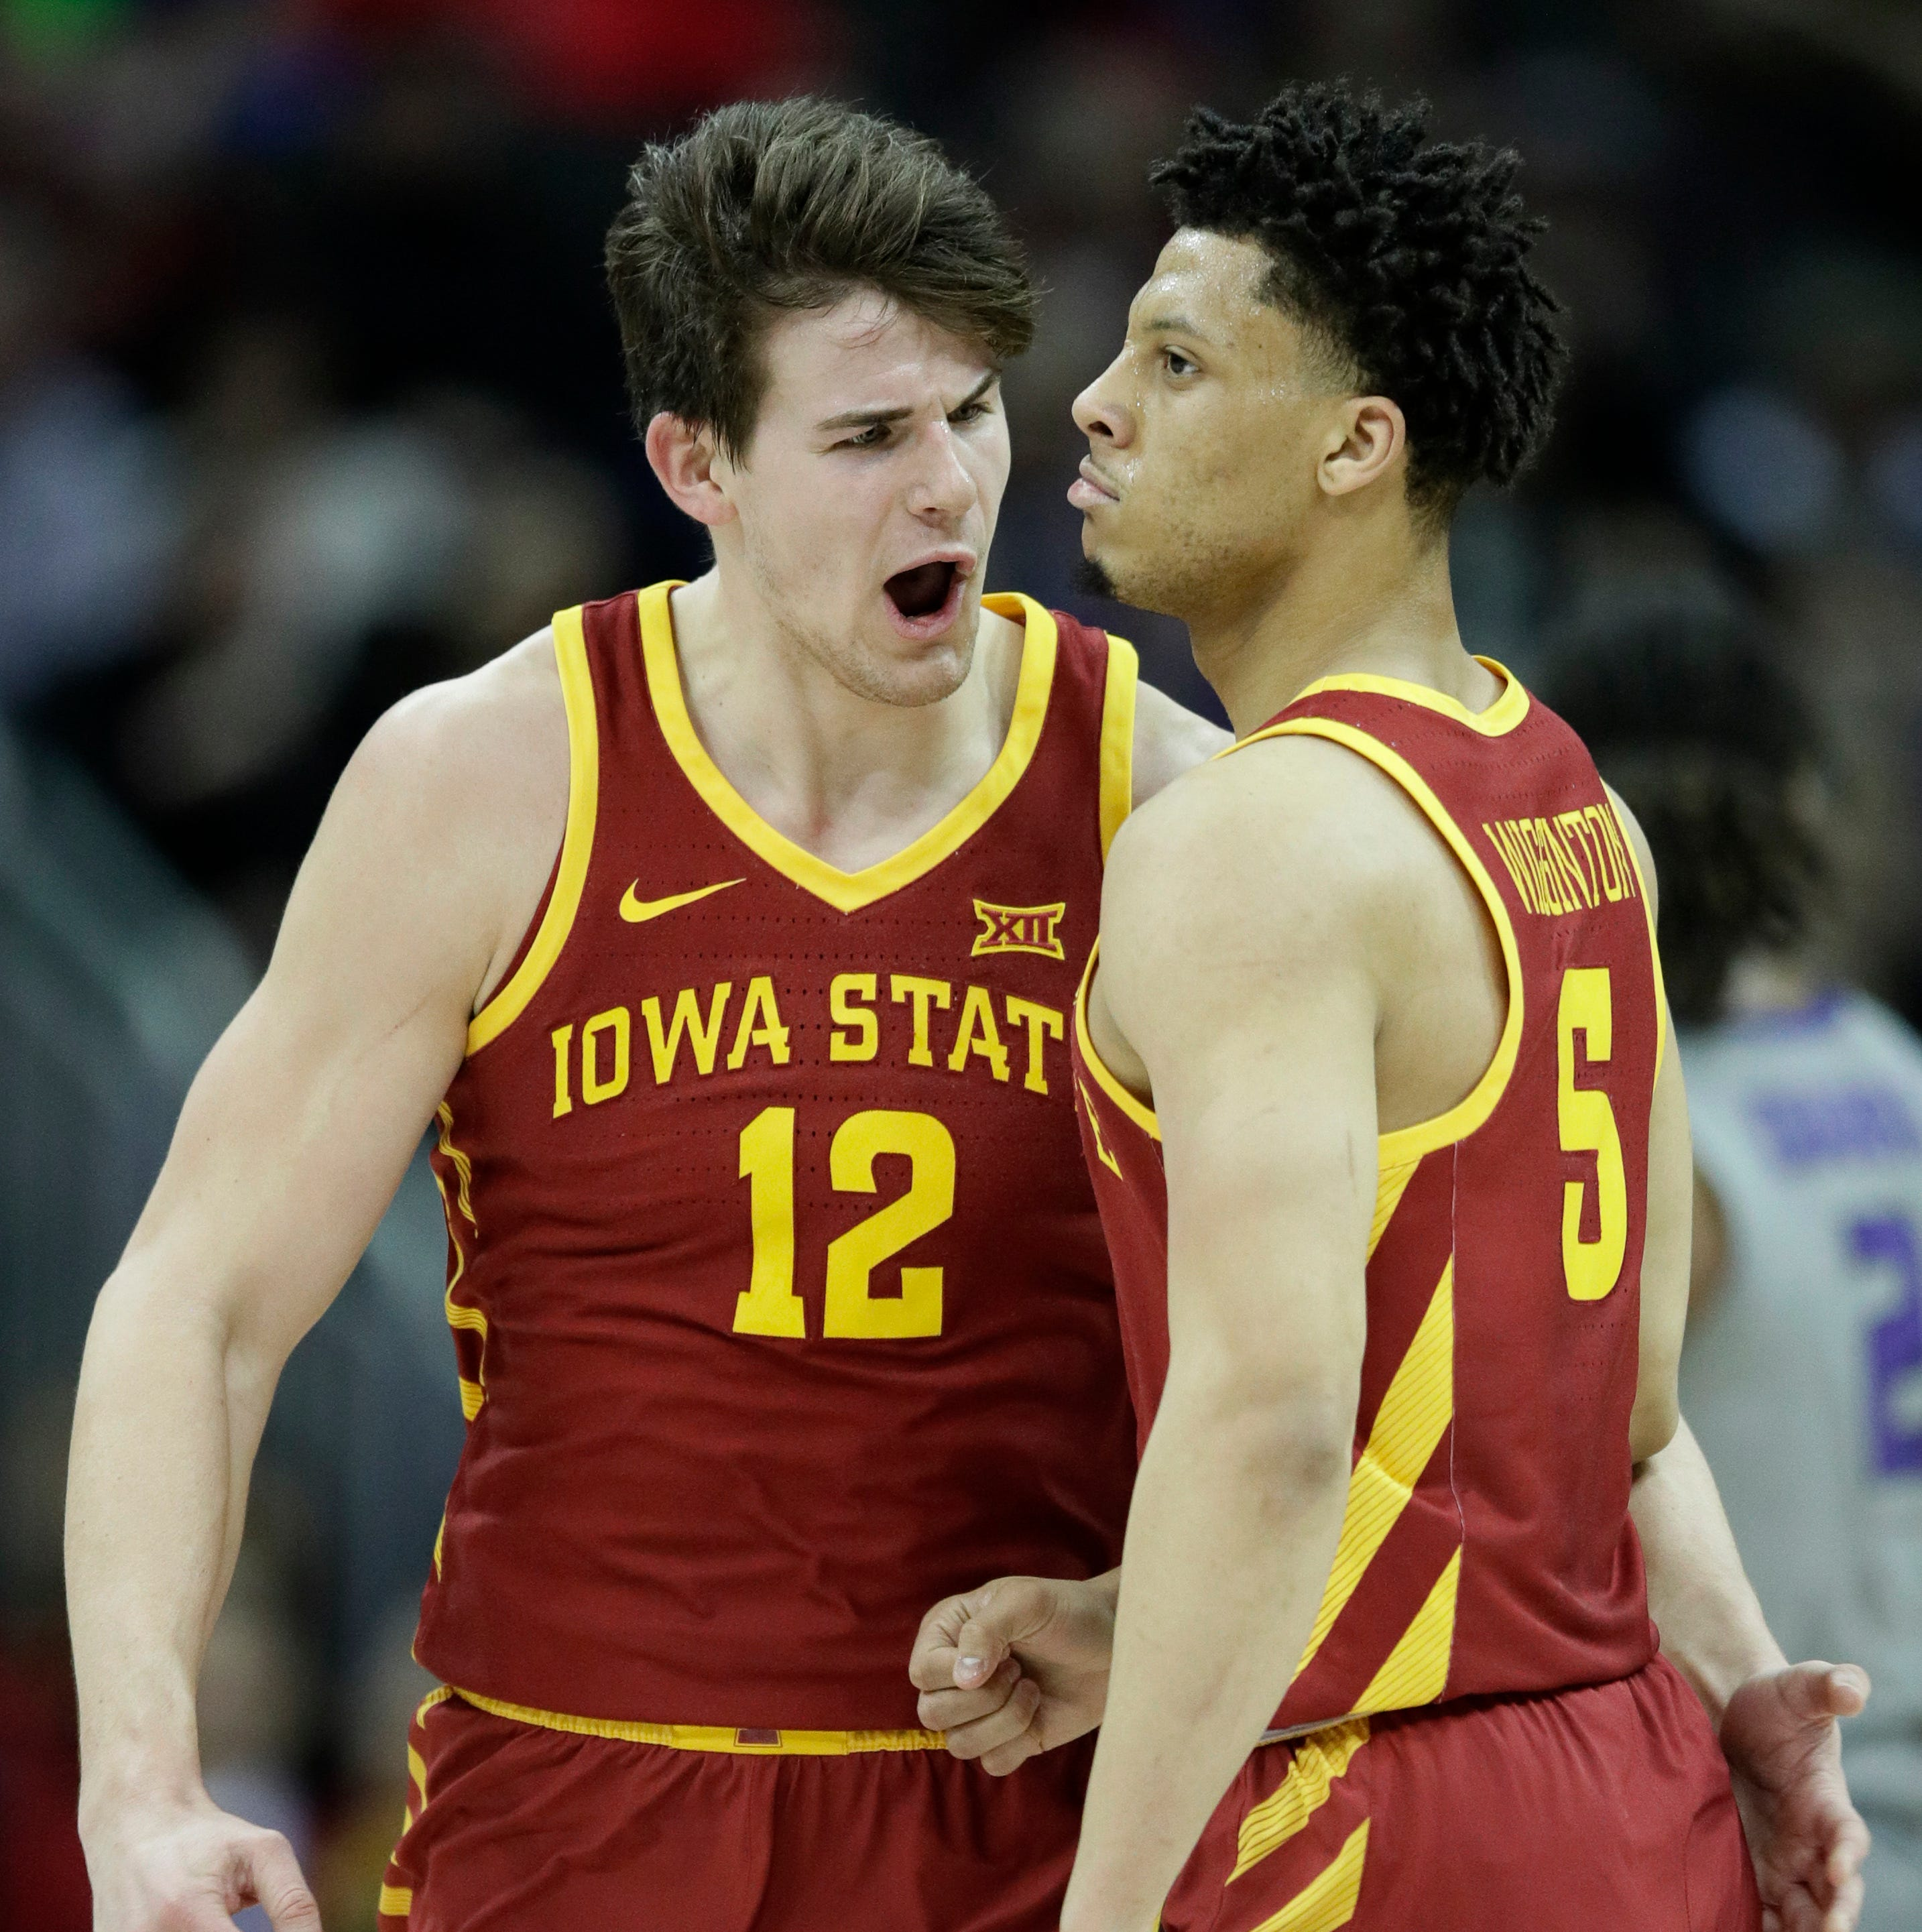 Peterson: Iowa State's Jacobson knows well the differences between Big 12 and Big Ten basketball